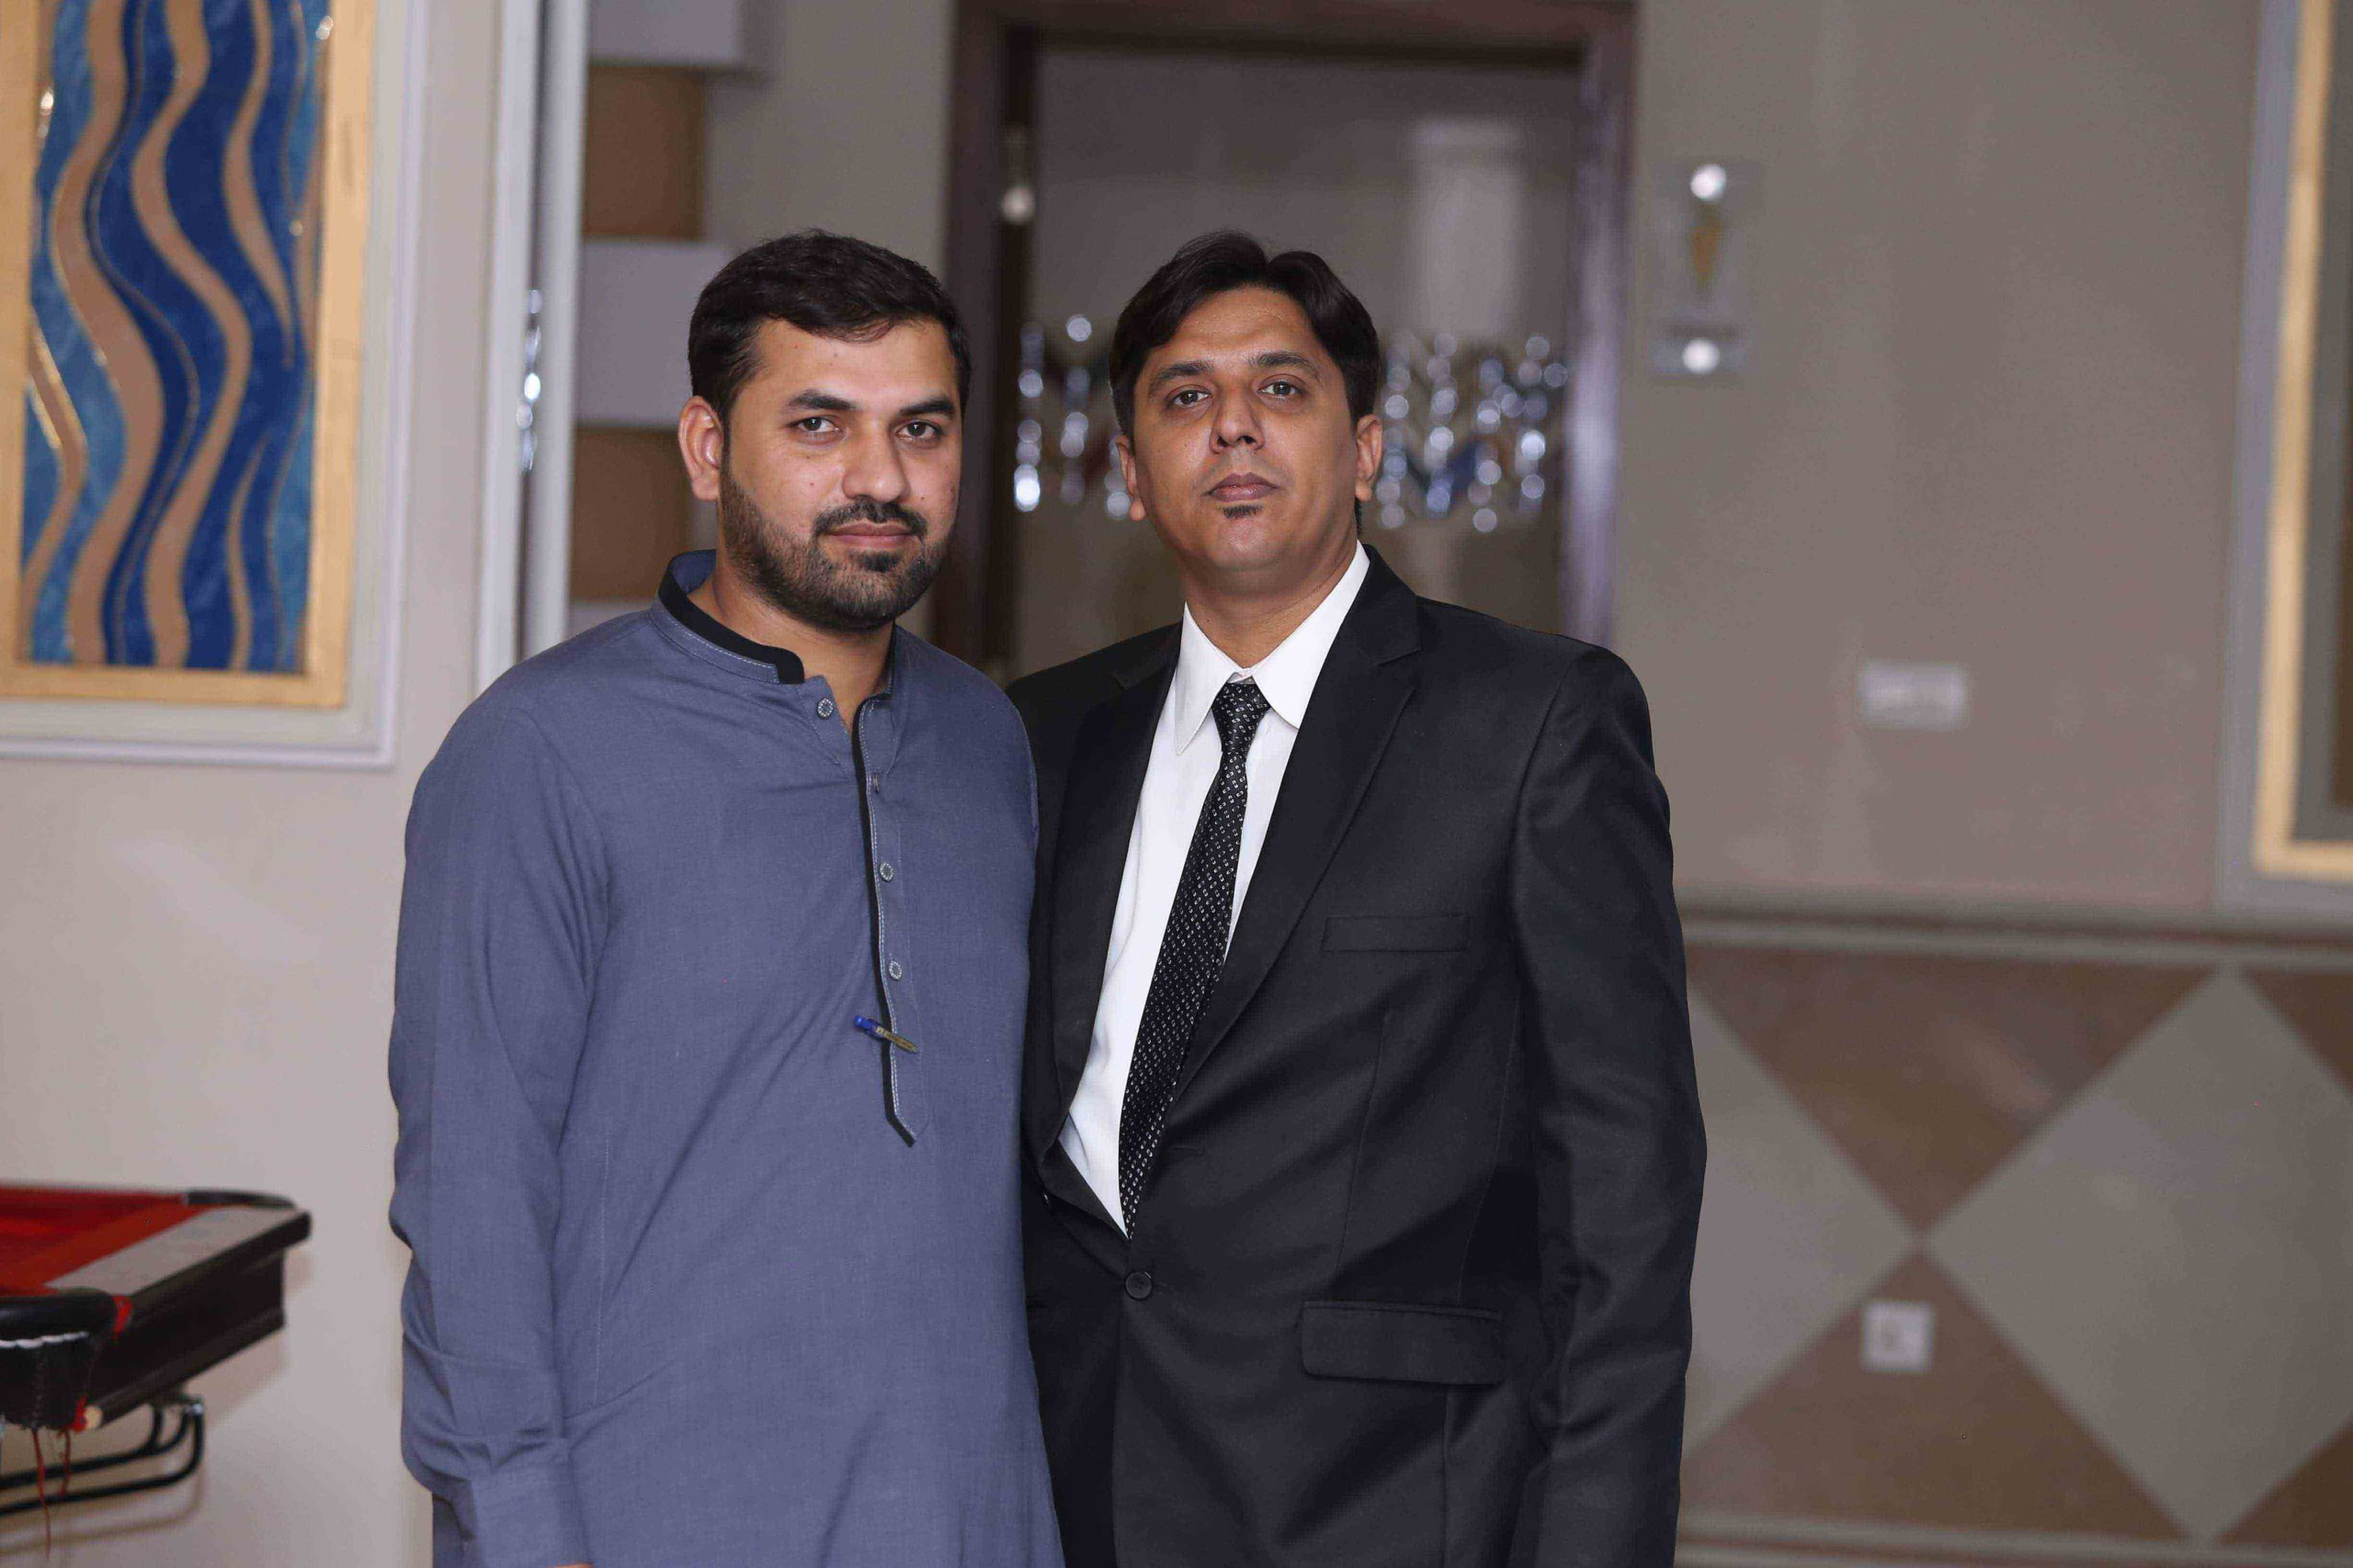 STAFF_ANNUAL_DINNER_&_IFTAR_PARTTY_6